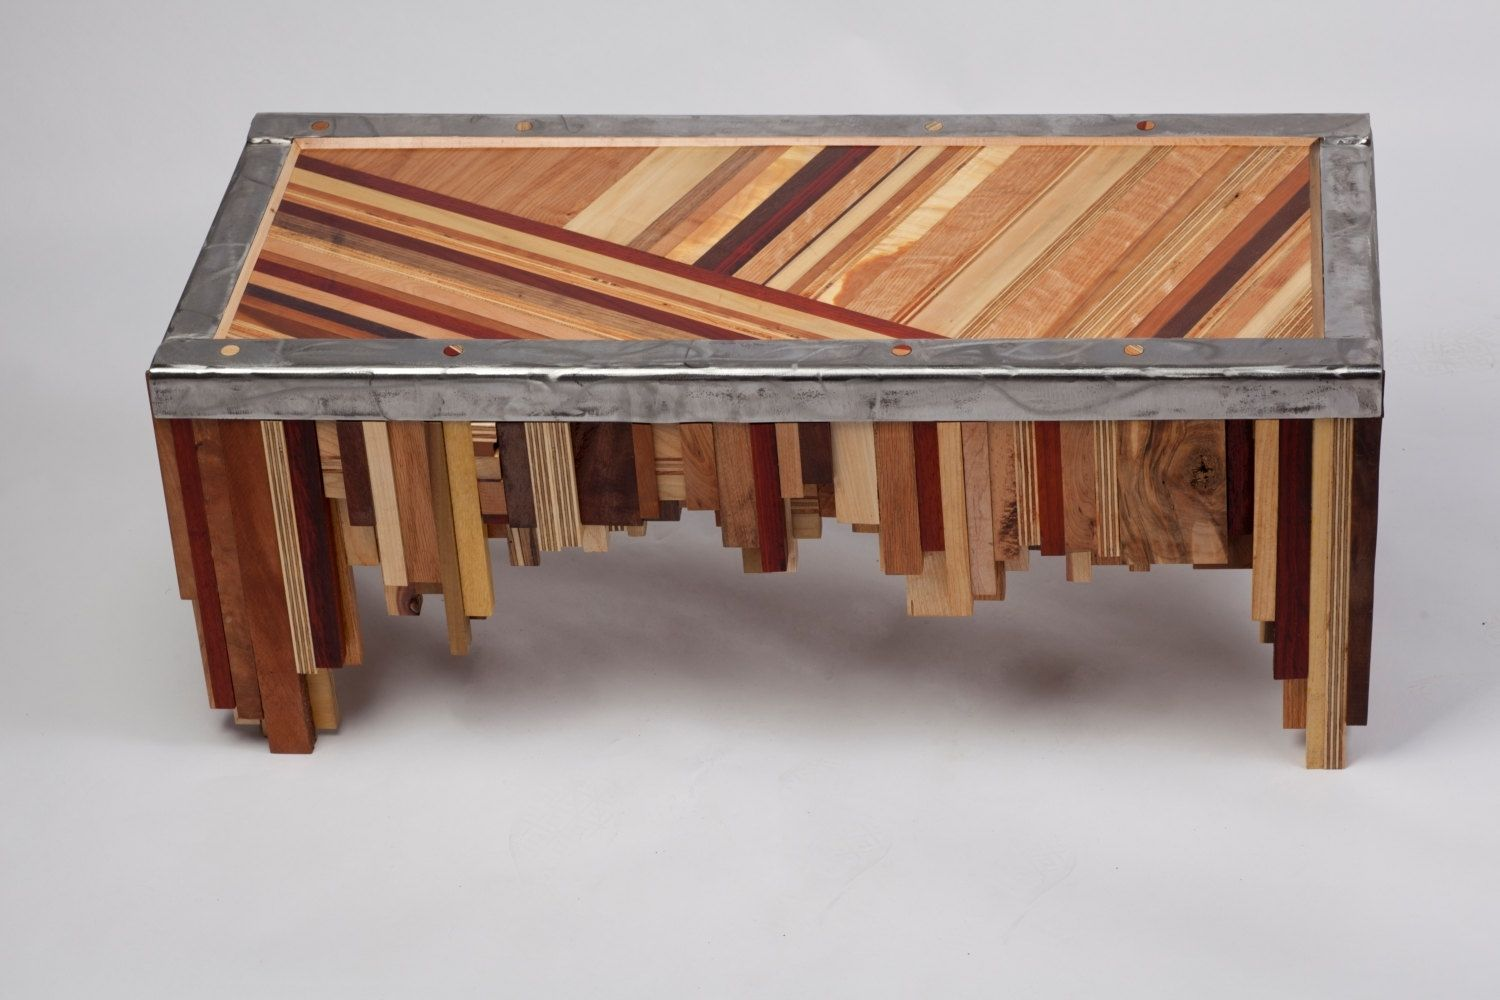 Hand Made Mixed Wood Table With Salvaged Steel Edging By